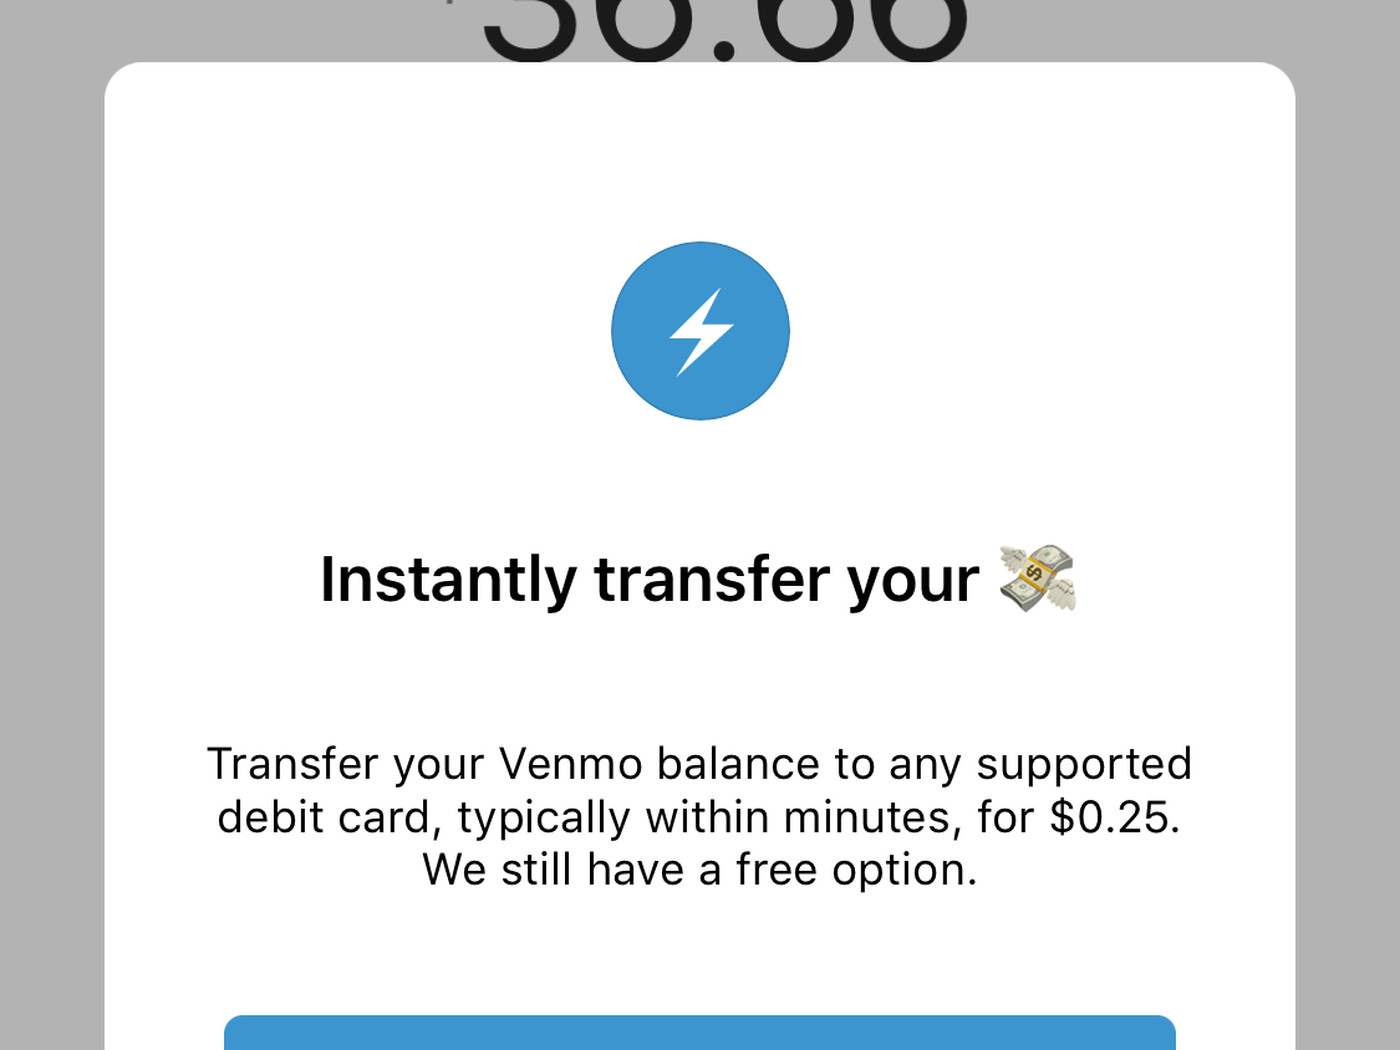 Venmo can now instantly transfer money to your debit card for 25